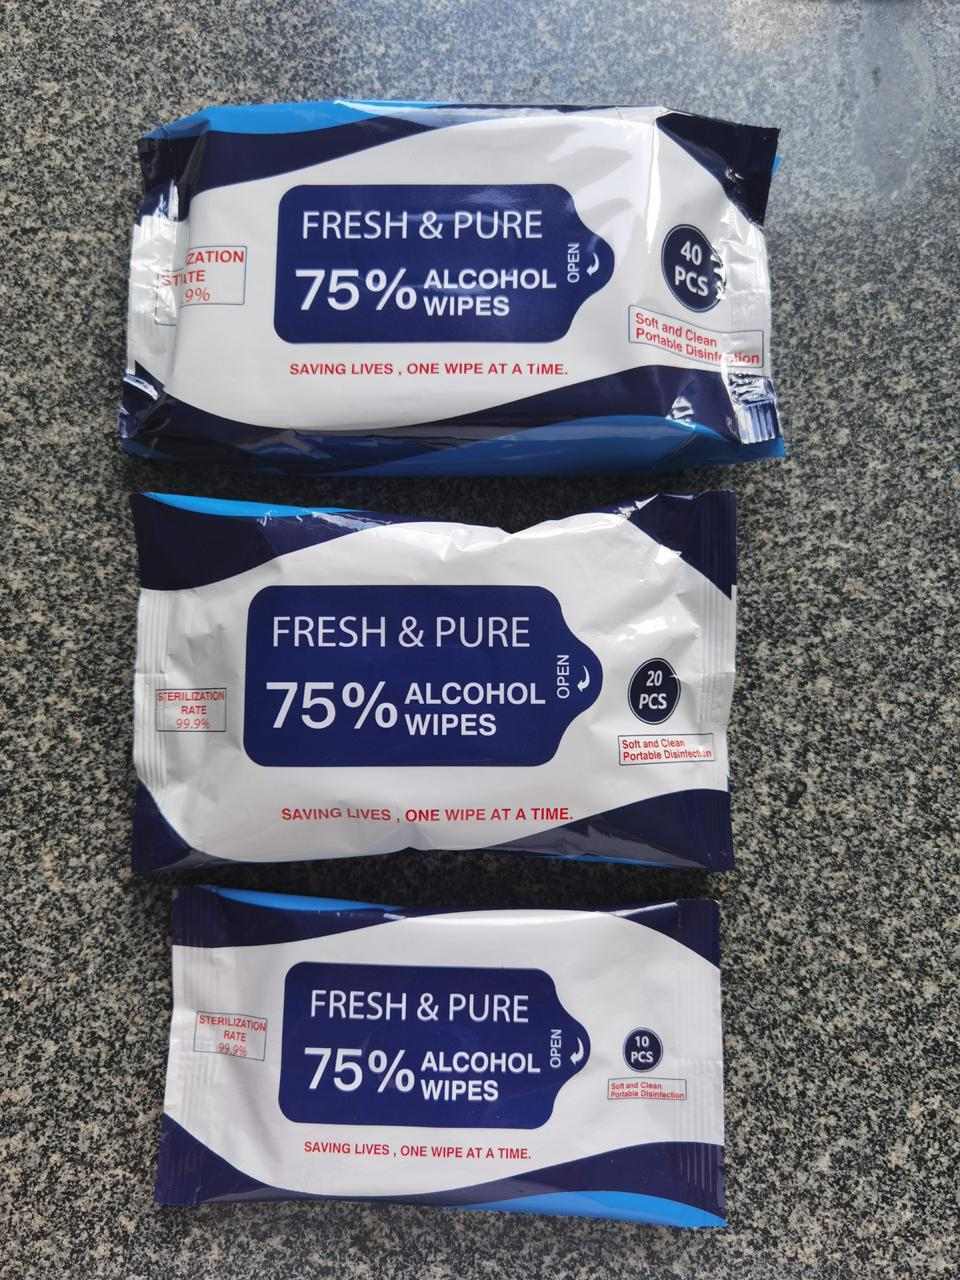 38510 - FRESH & PURE 75% Alcohol 40ct Wipes USA